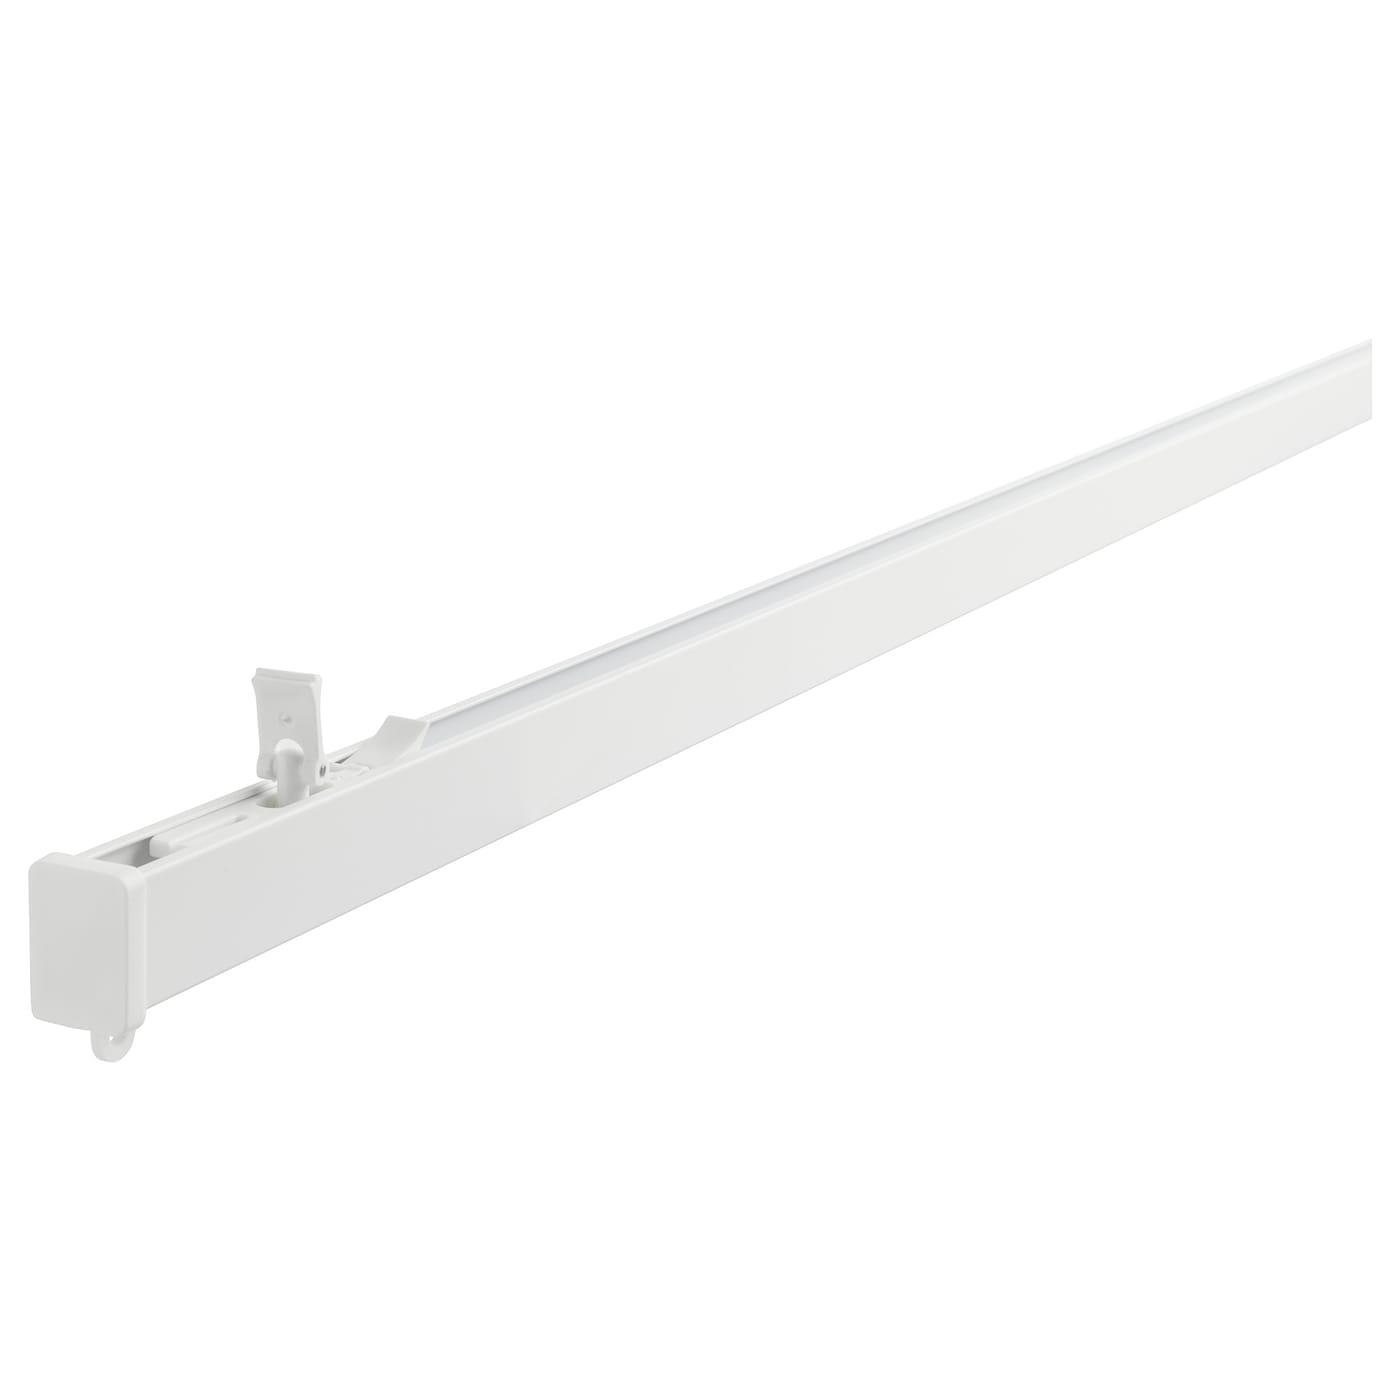 IKEA VIDGA single track rail The rail can be cut to the desired length with a hacksaw.